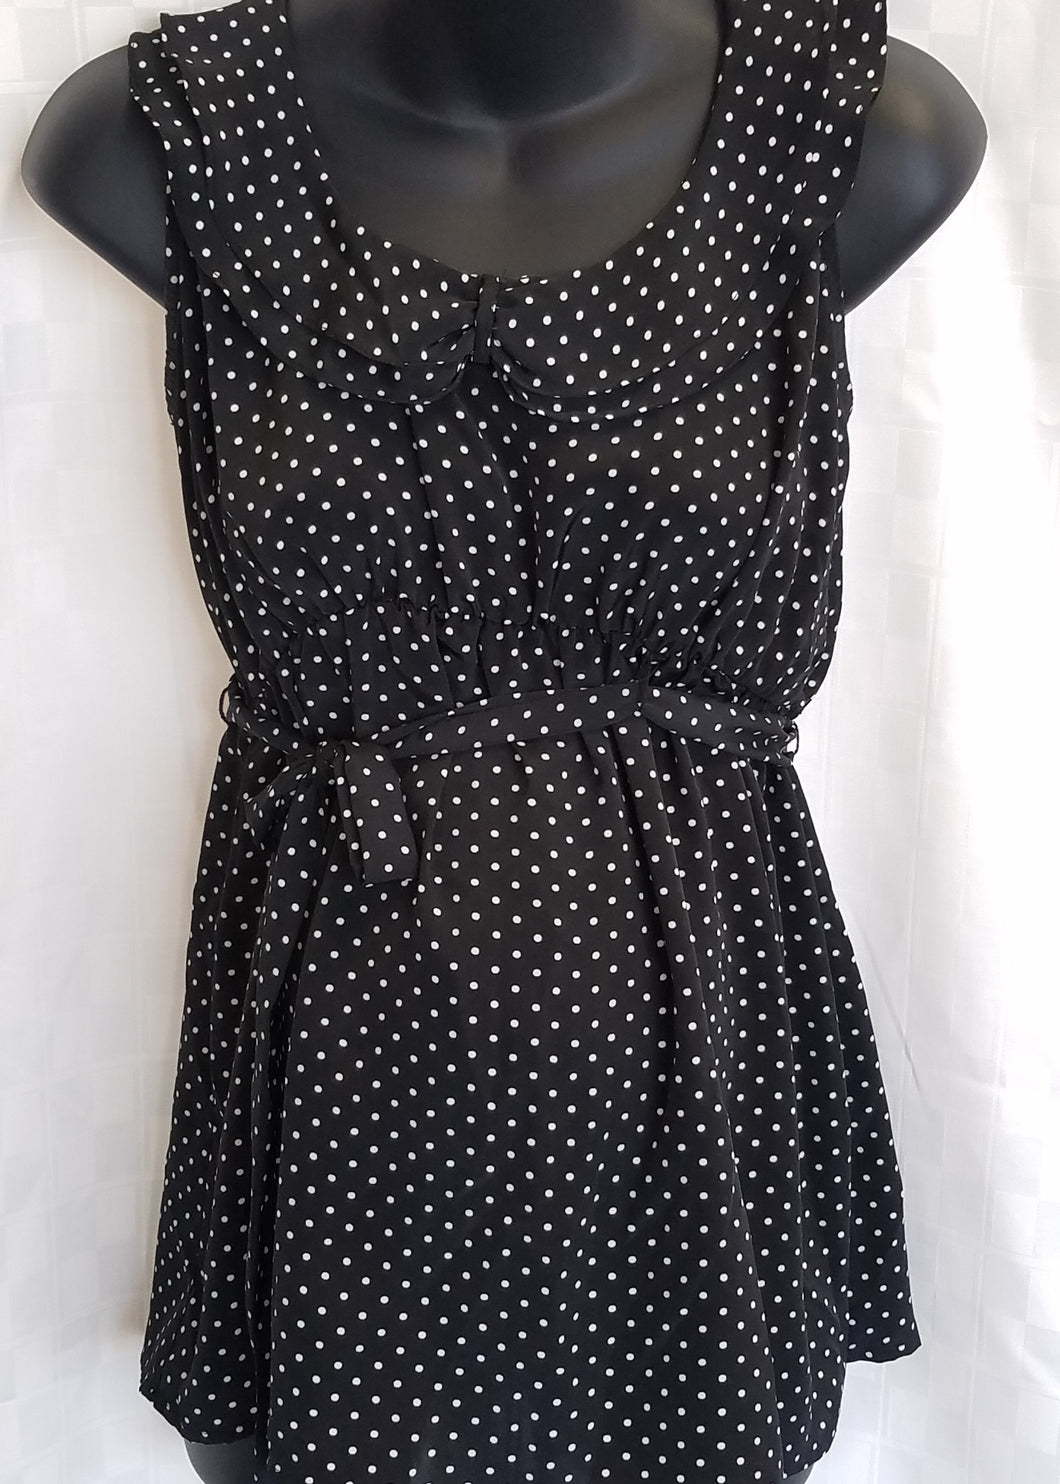 Large Black with White Polka Dot Sleeveless Maternity Blouse